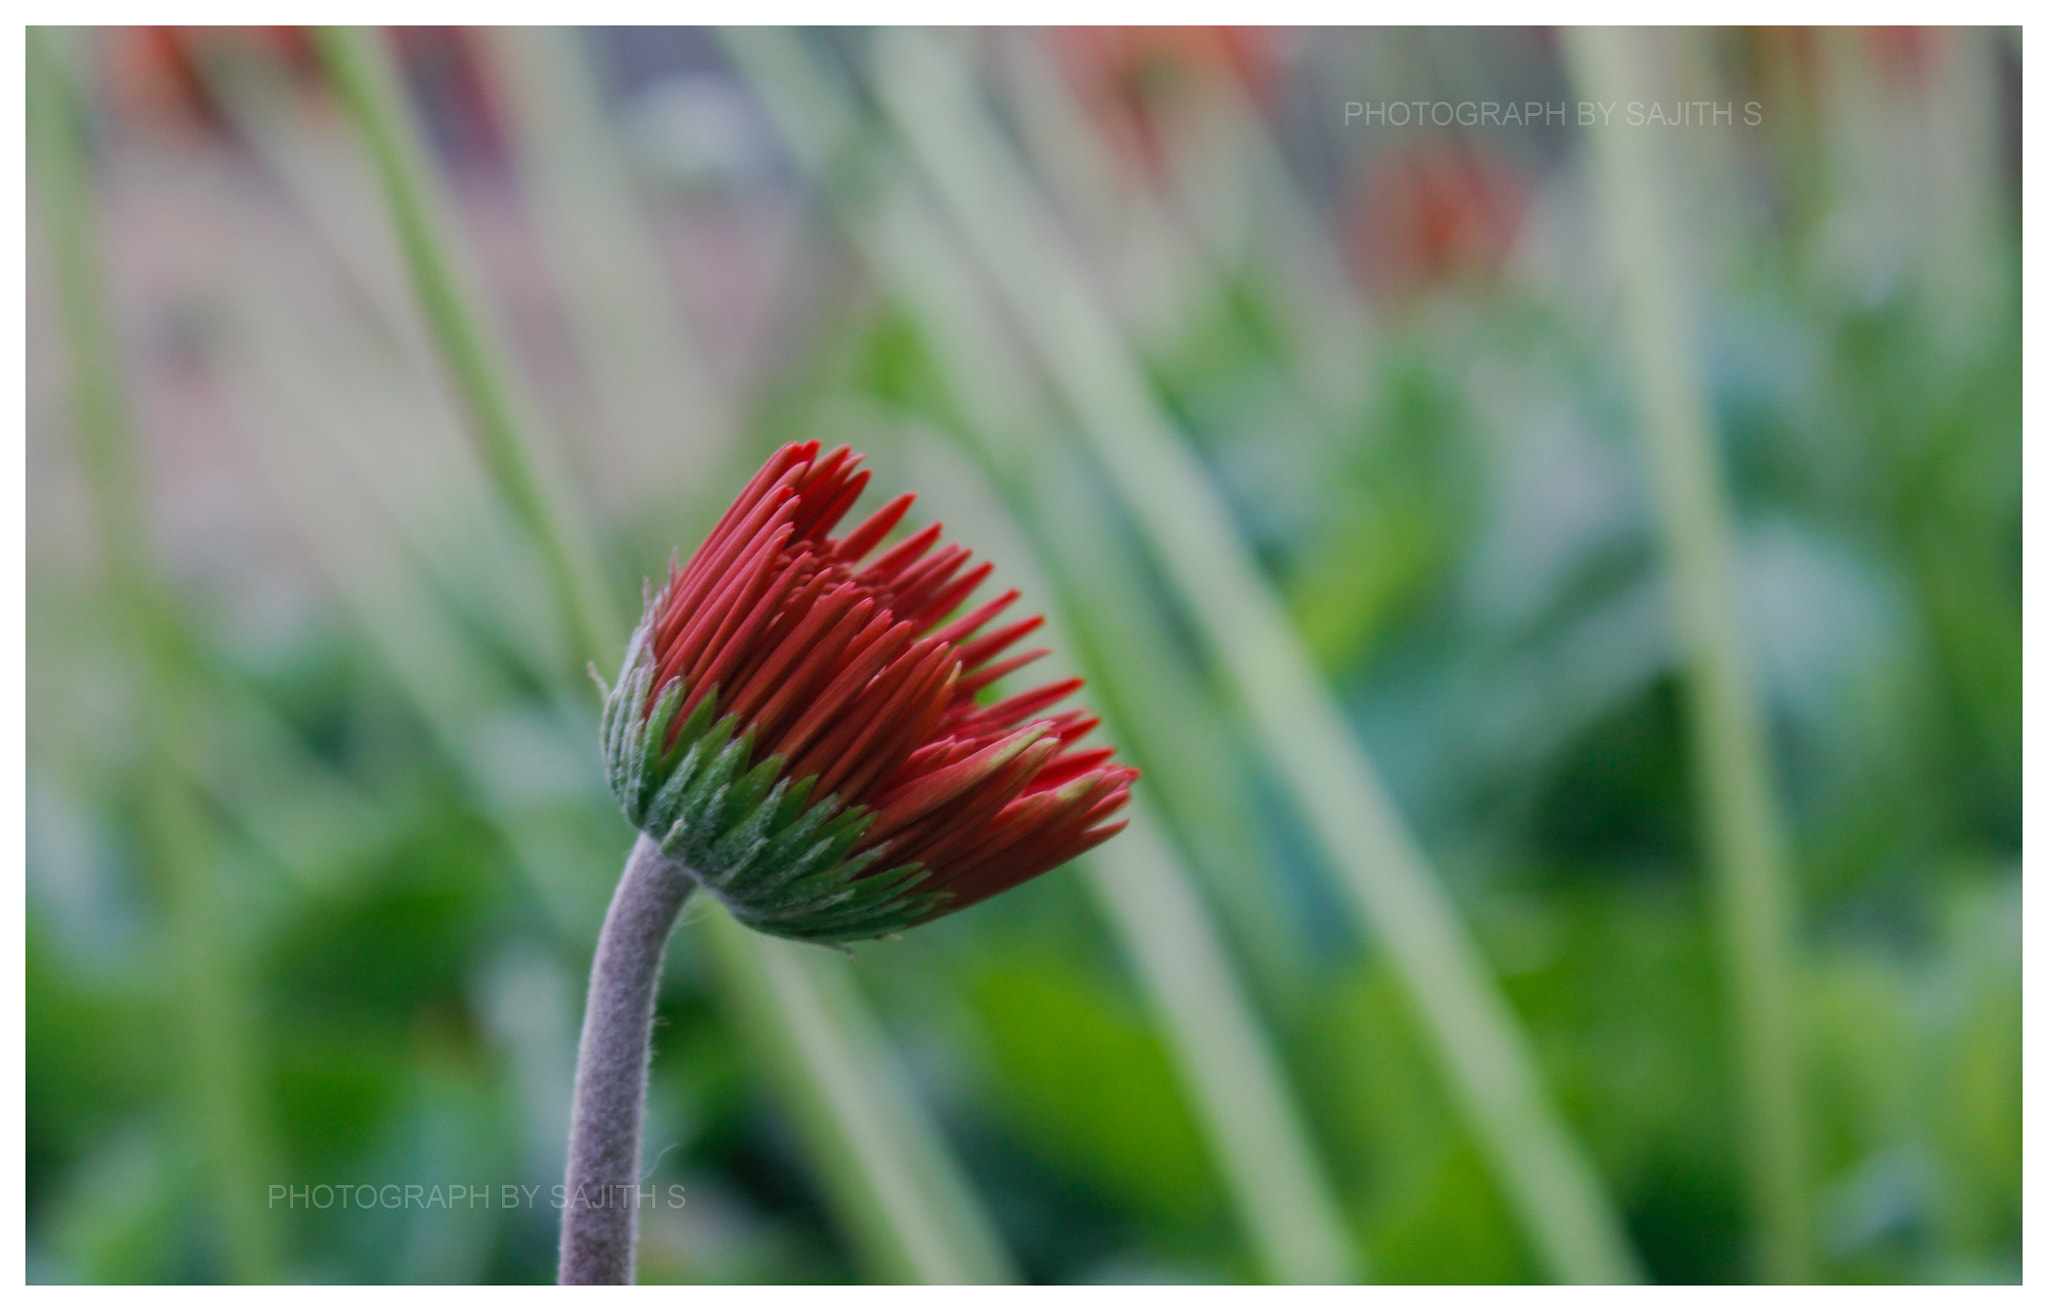 Photograph Flower by Sajith S on 500px